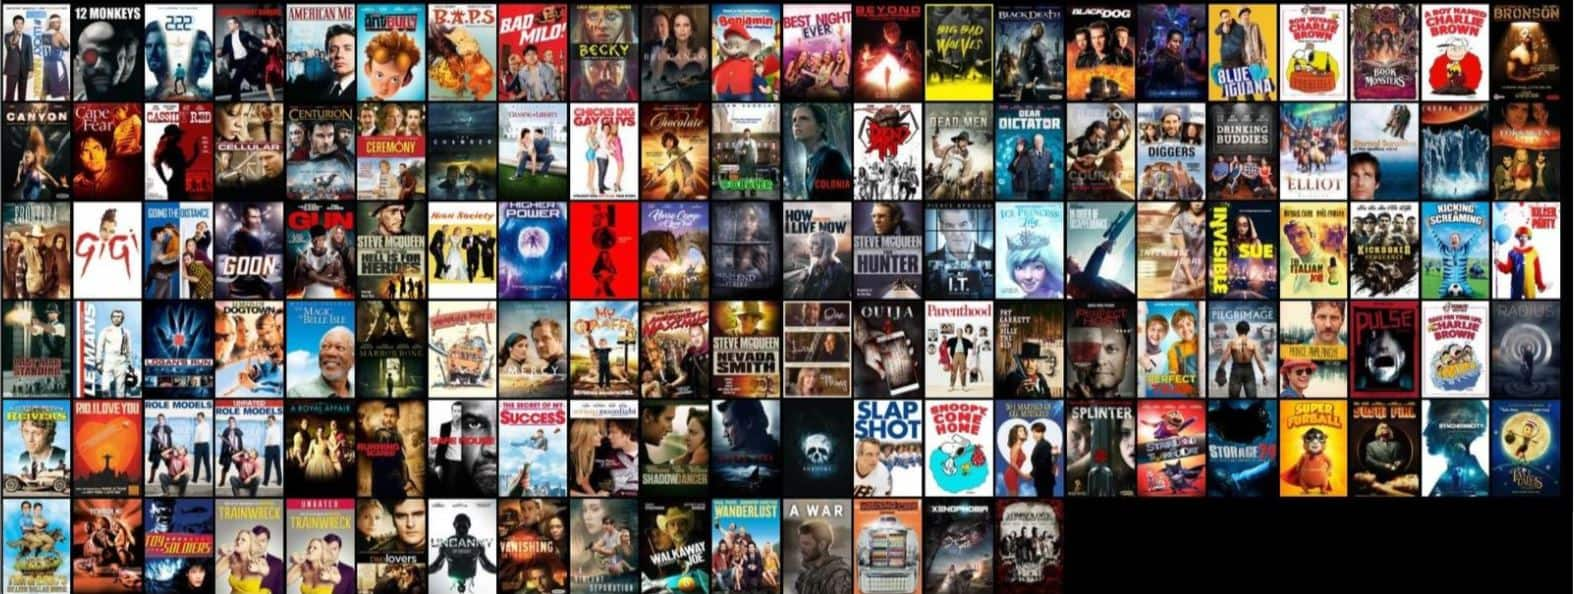 VUDU Mix & Match: Bargains (Digital HDX)  2 for $10 with new titles